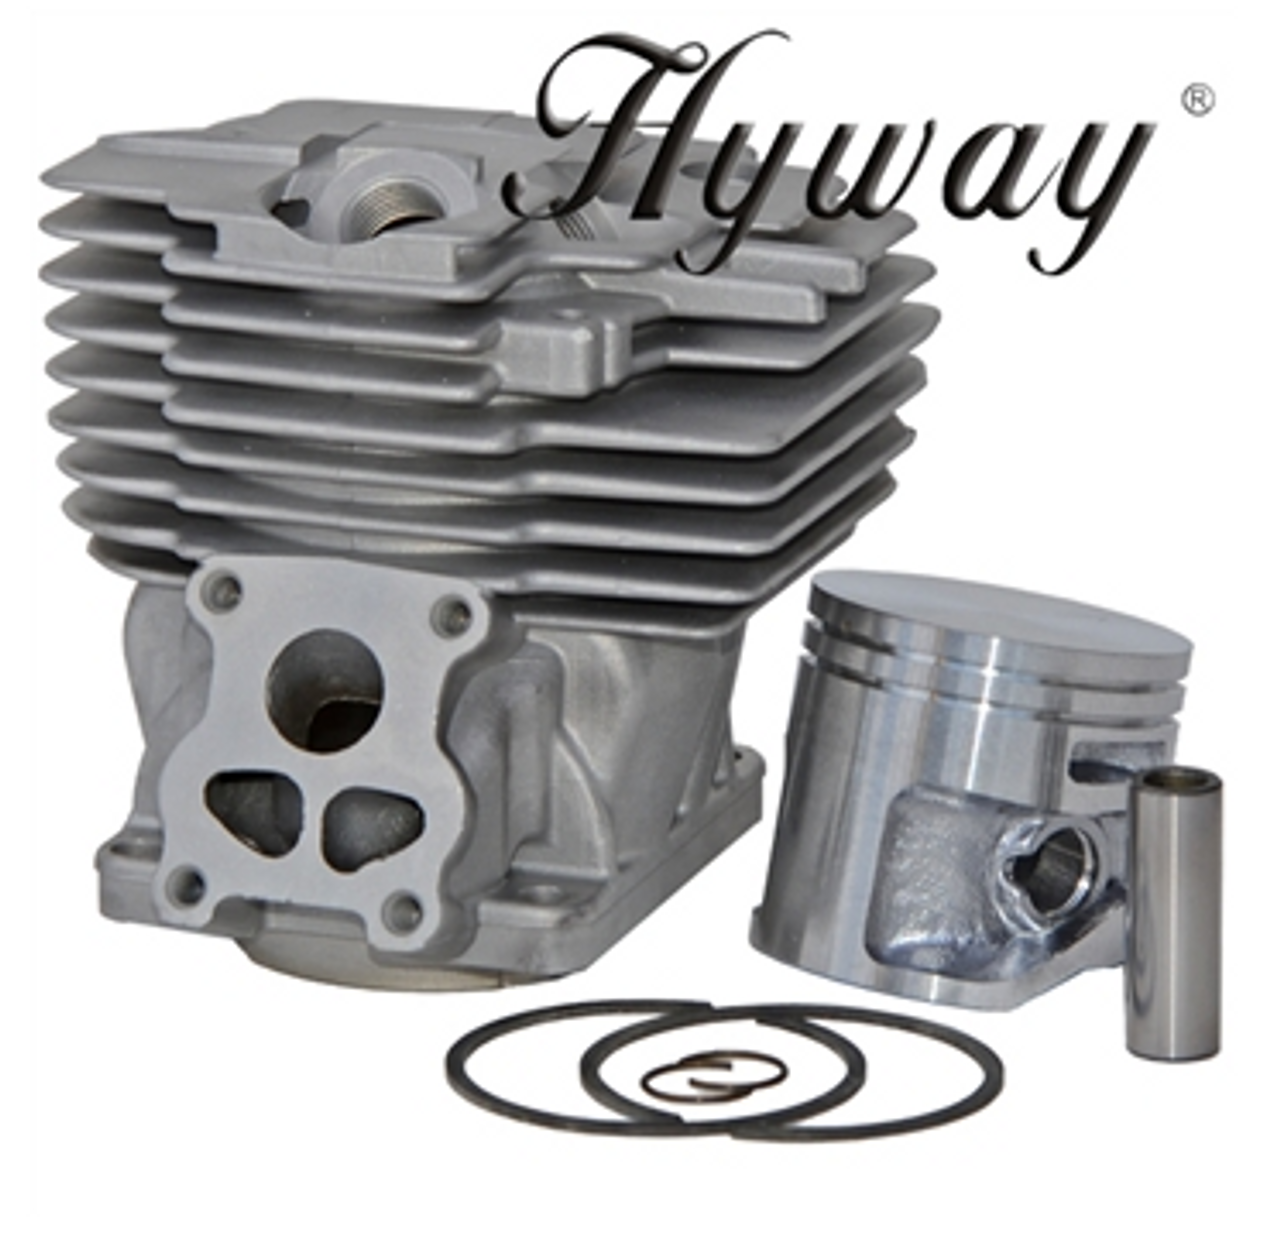 HYWAY STIHL MS 441 50MM CYLINDER AND PISTON RING ASSEMBLY 11380201201